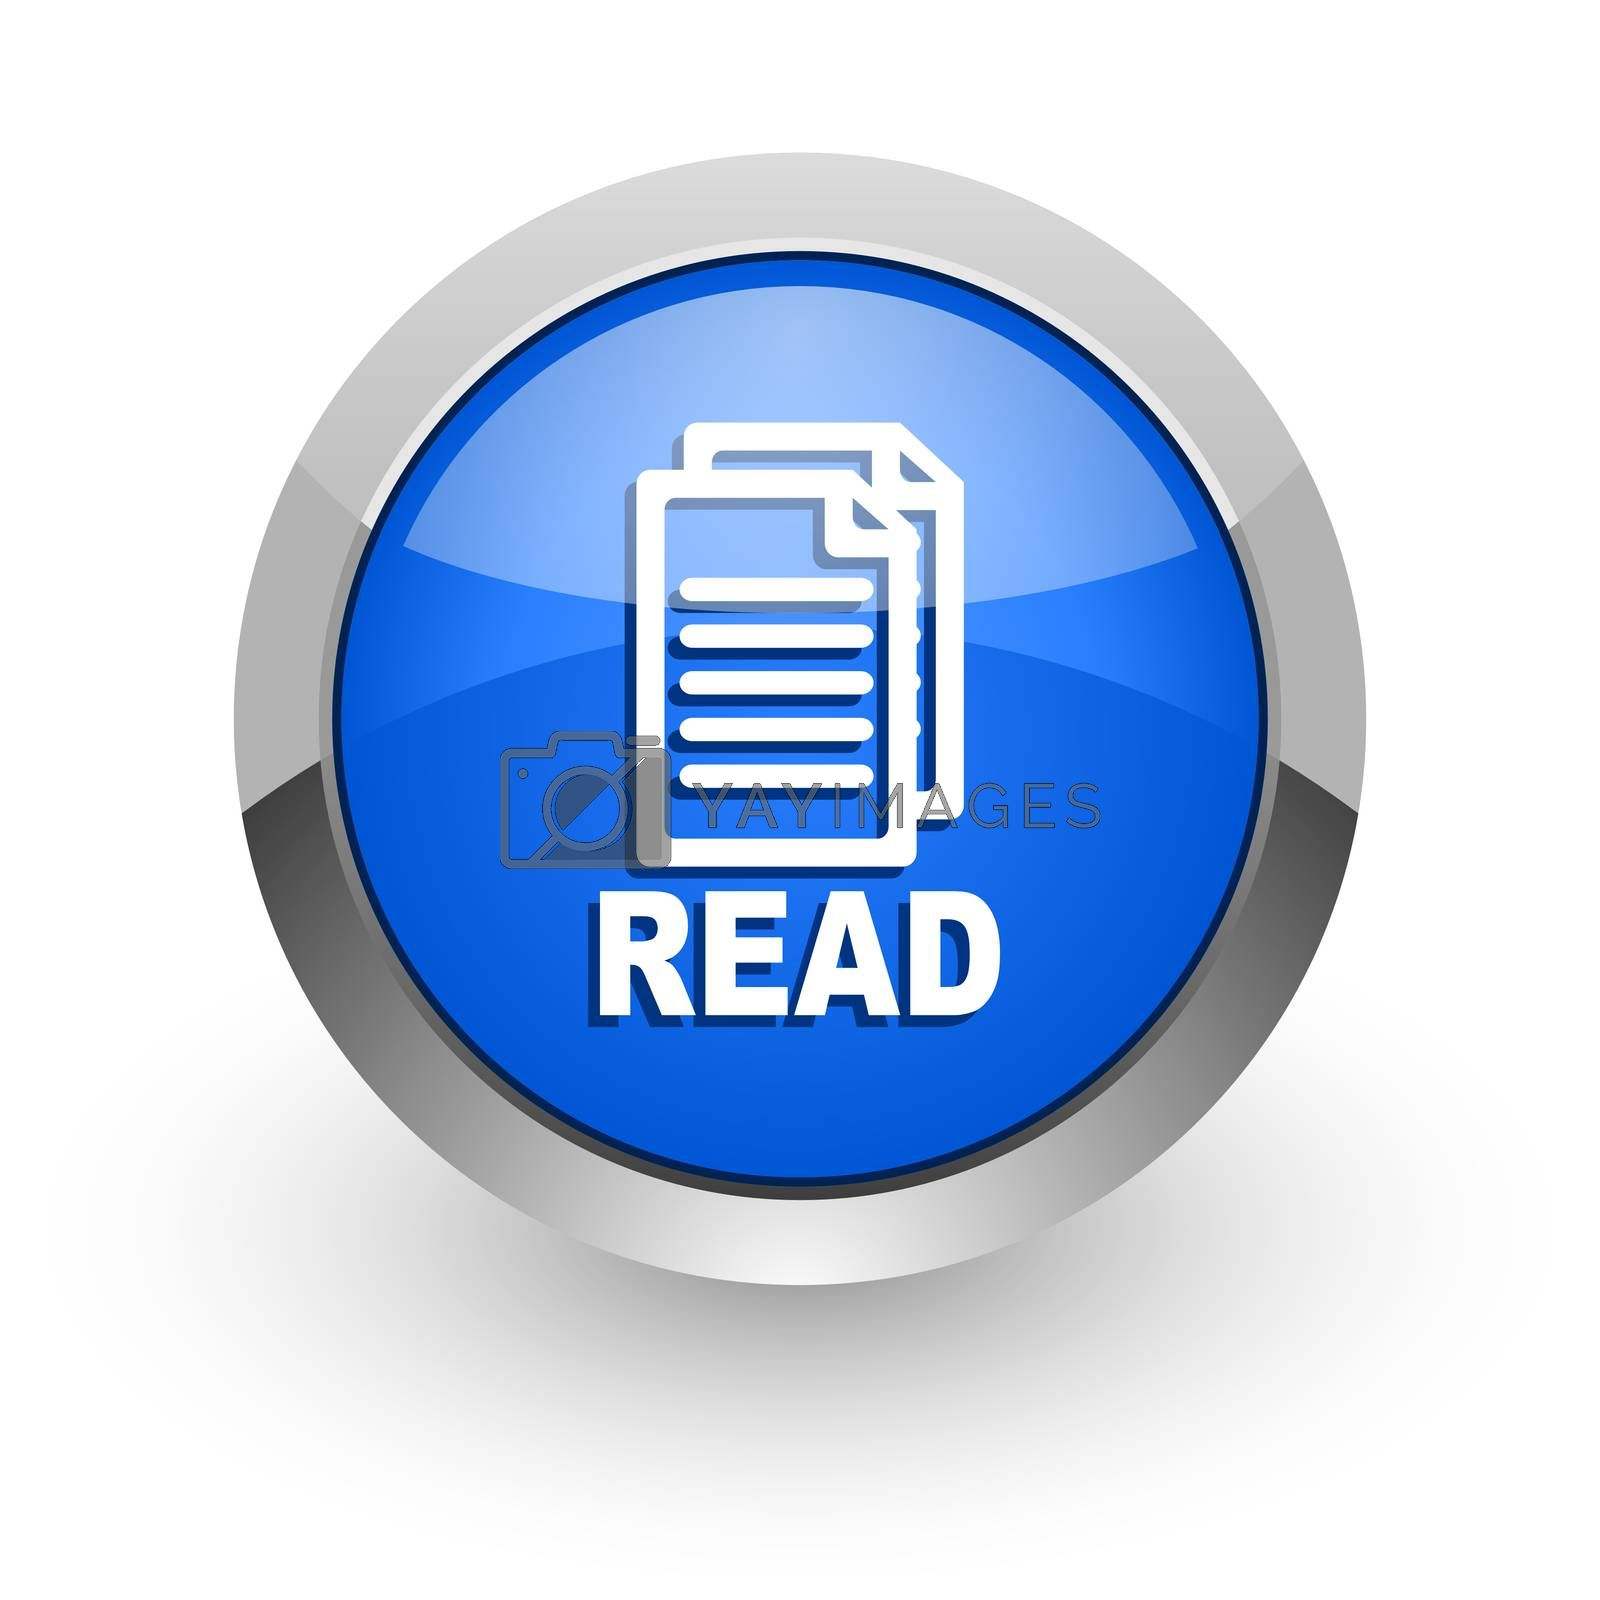 Royalty free image of read blue glossy web icon by alexwhite